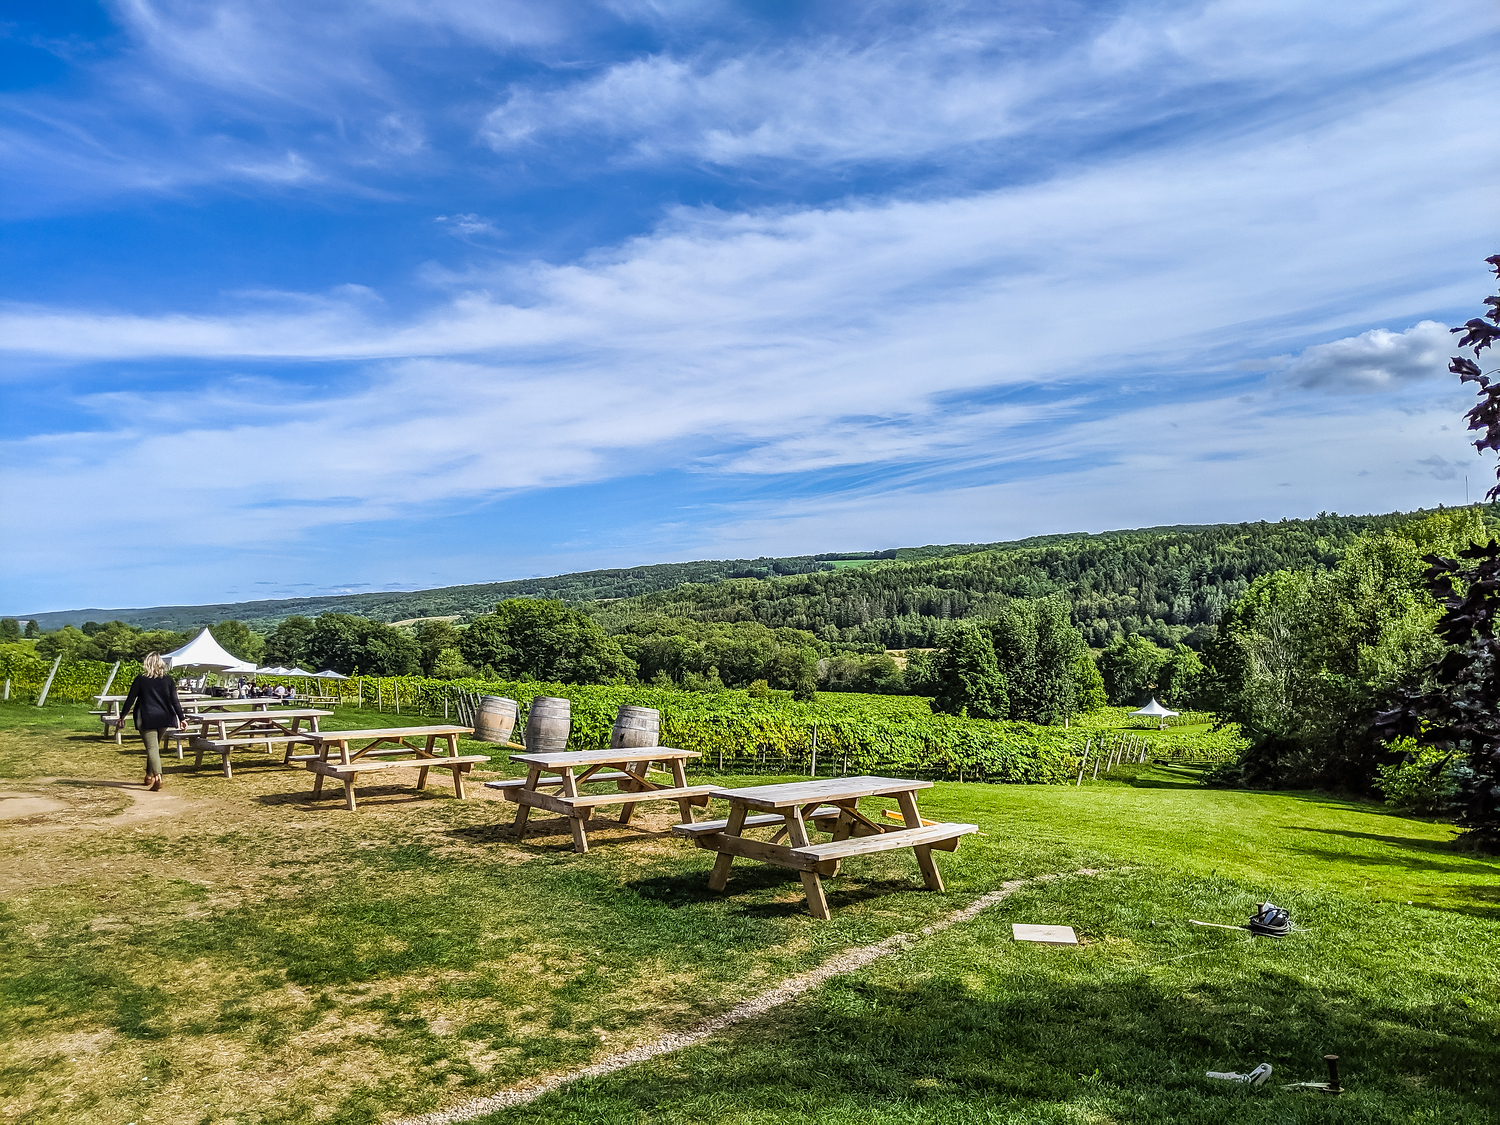 Benjamin Bridge vineyards, it serves a very popular Nova Scotia wine called Nova 7.